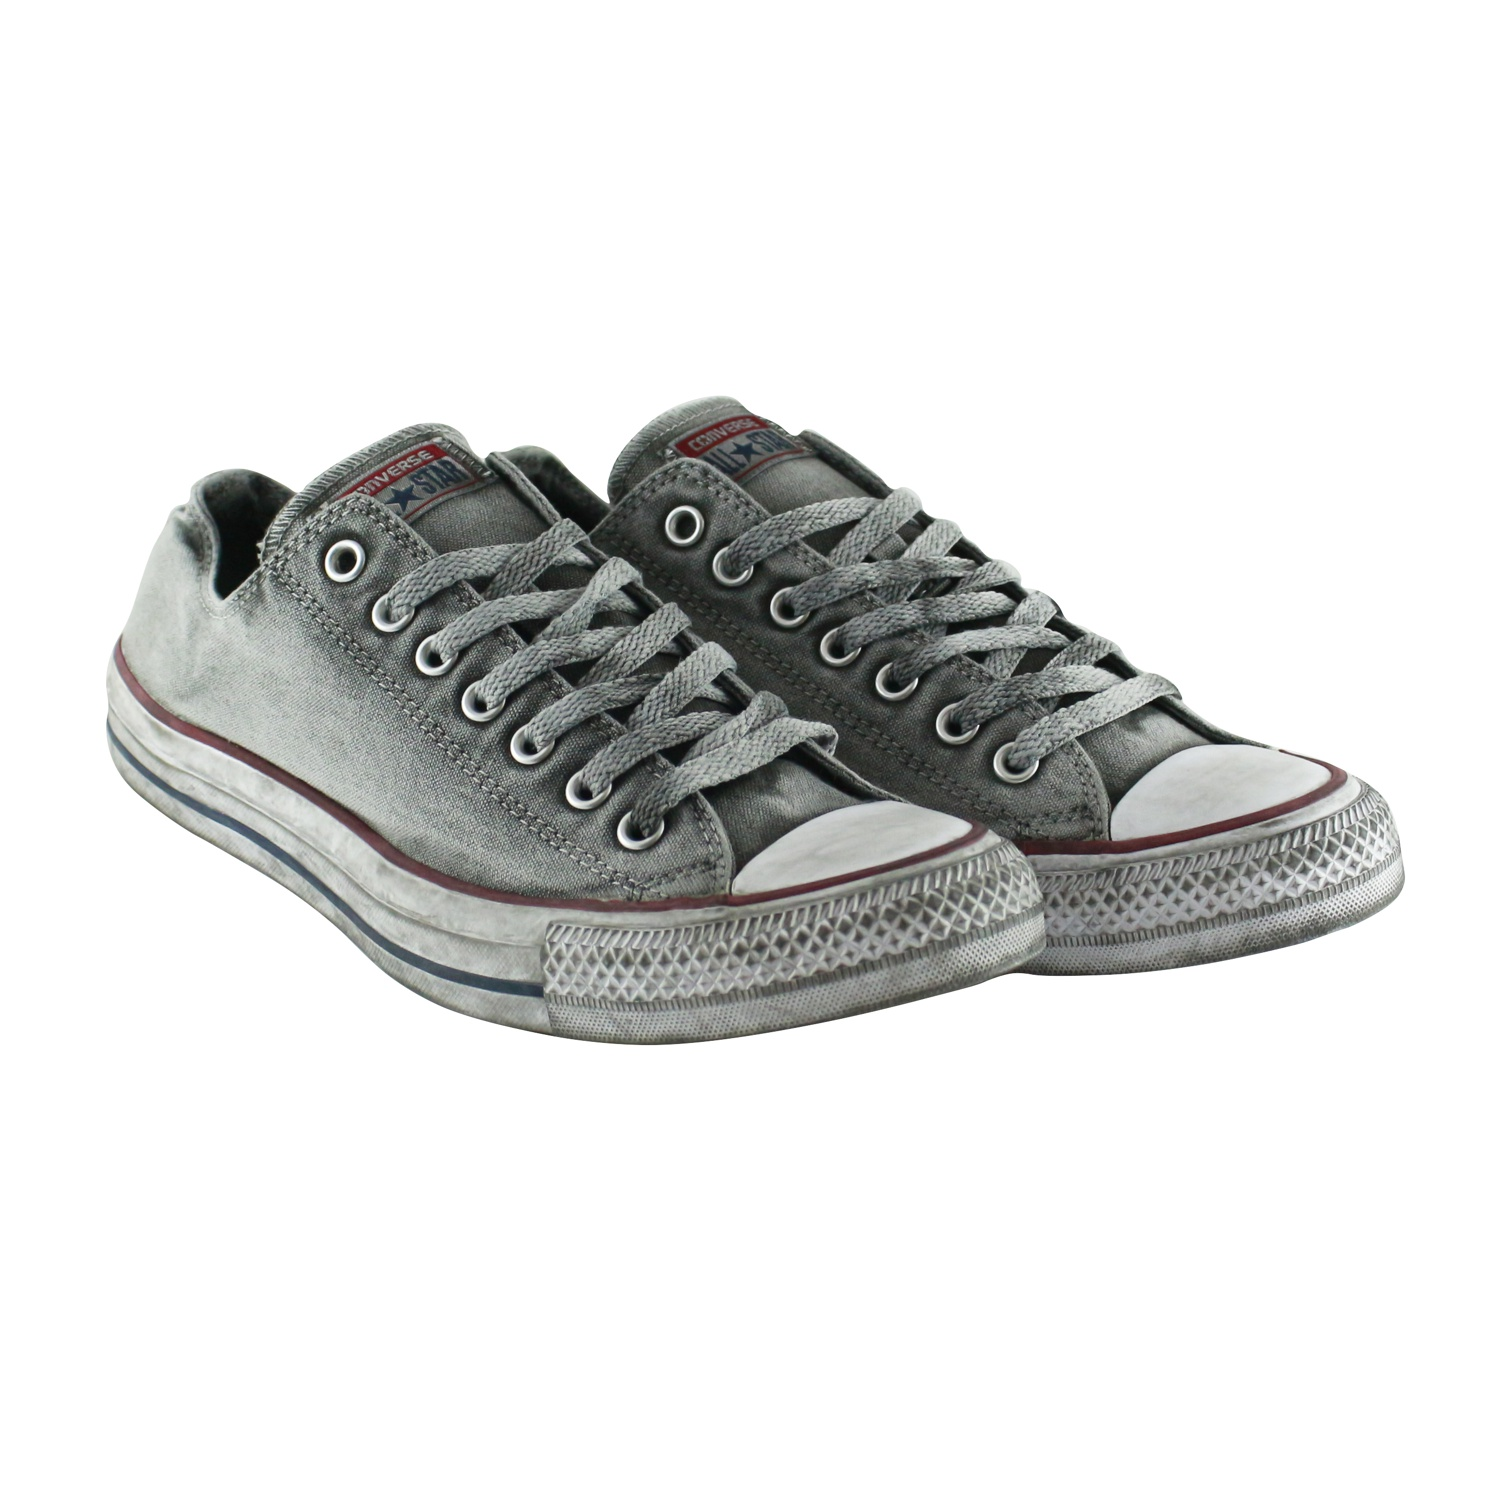 Beliebt Season clearance Coupons Converse All Star Rot